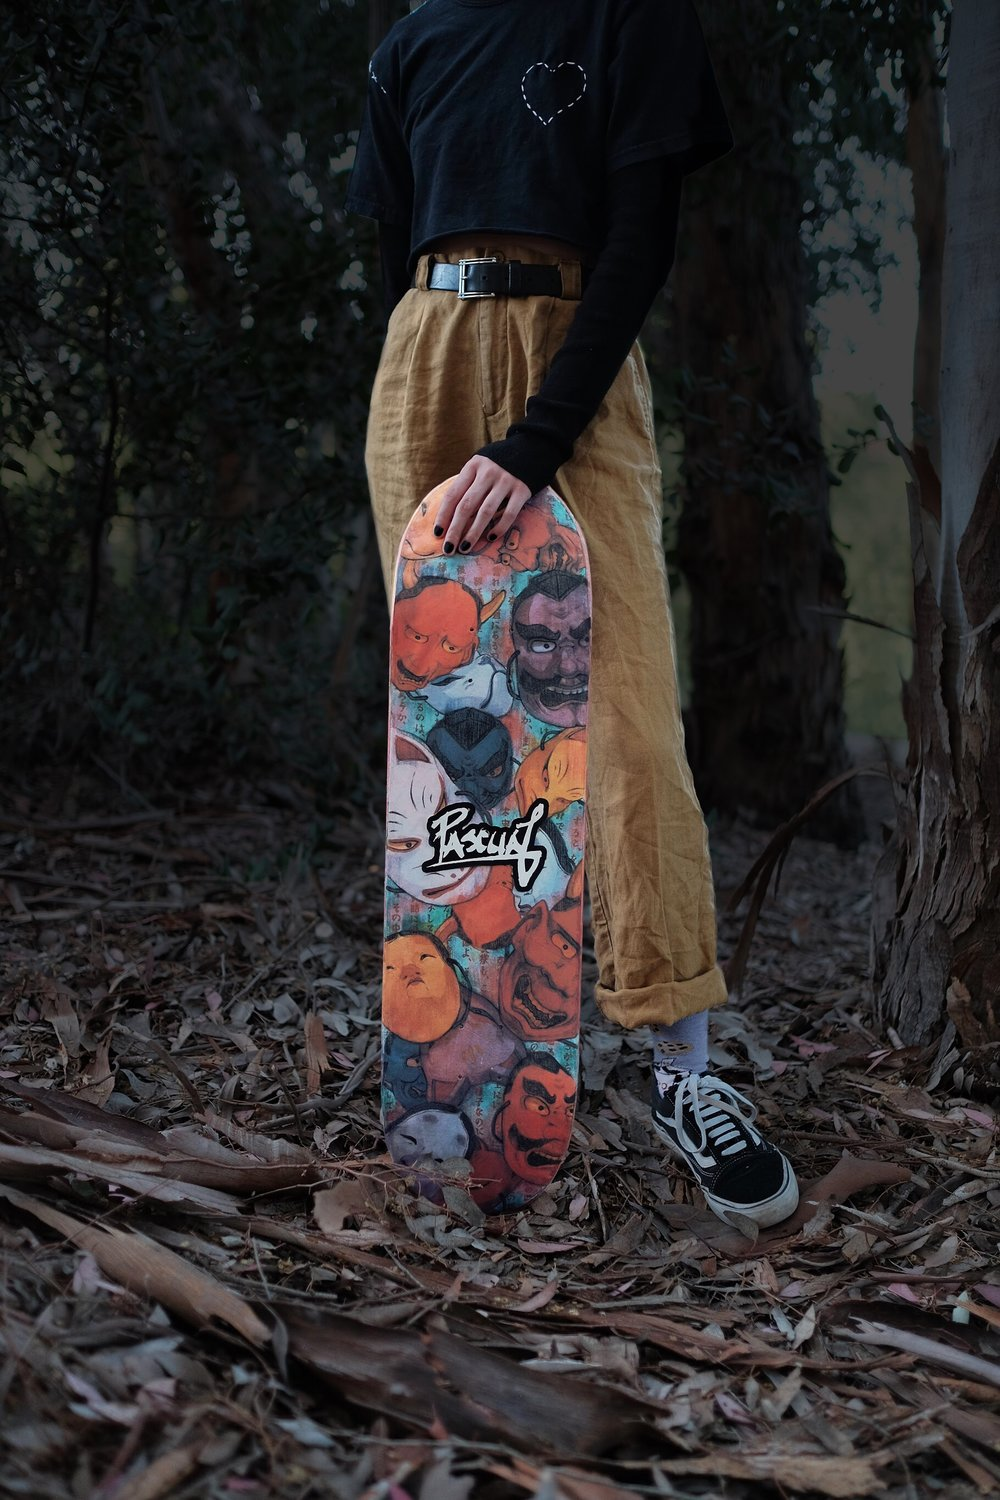 Two-Faced Exclusive SDCC 2018 Skate Deck - Only Available at San Diego Comic Con 2018 (Booth #4716)